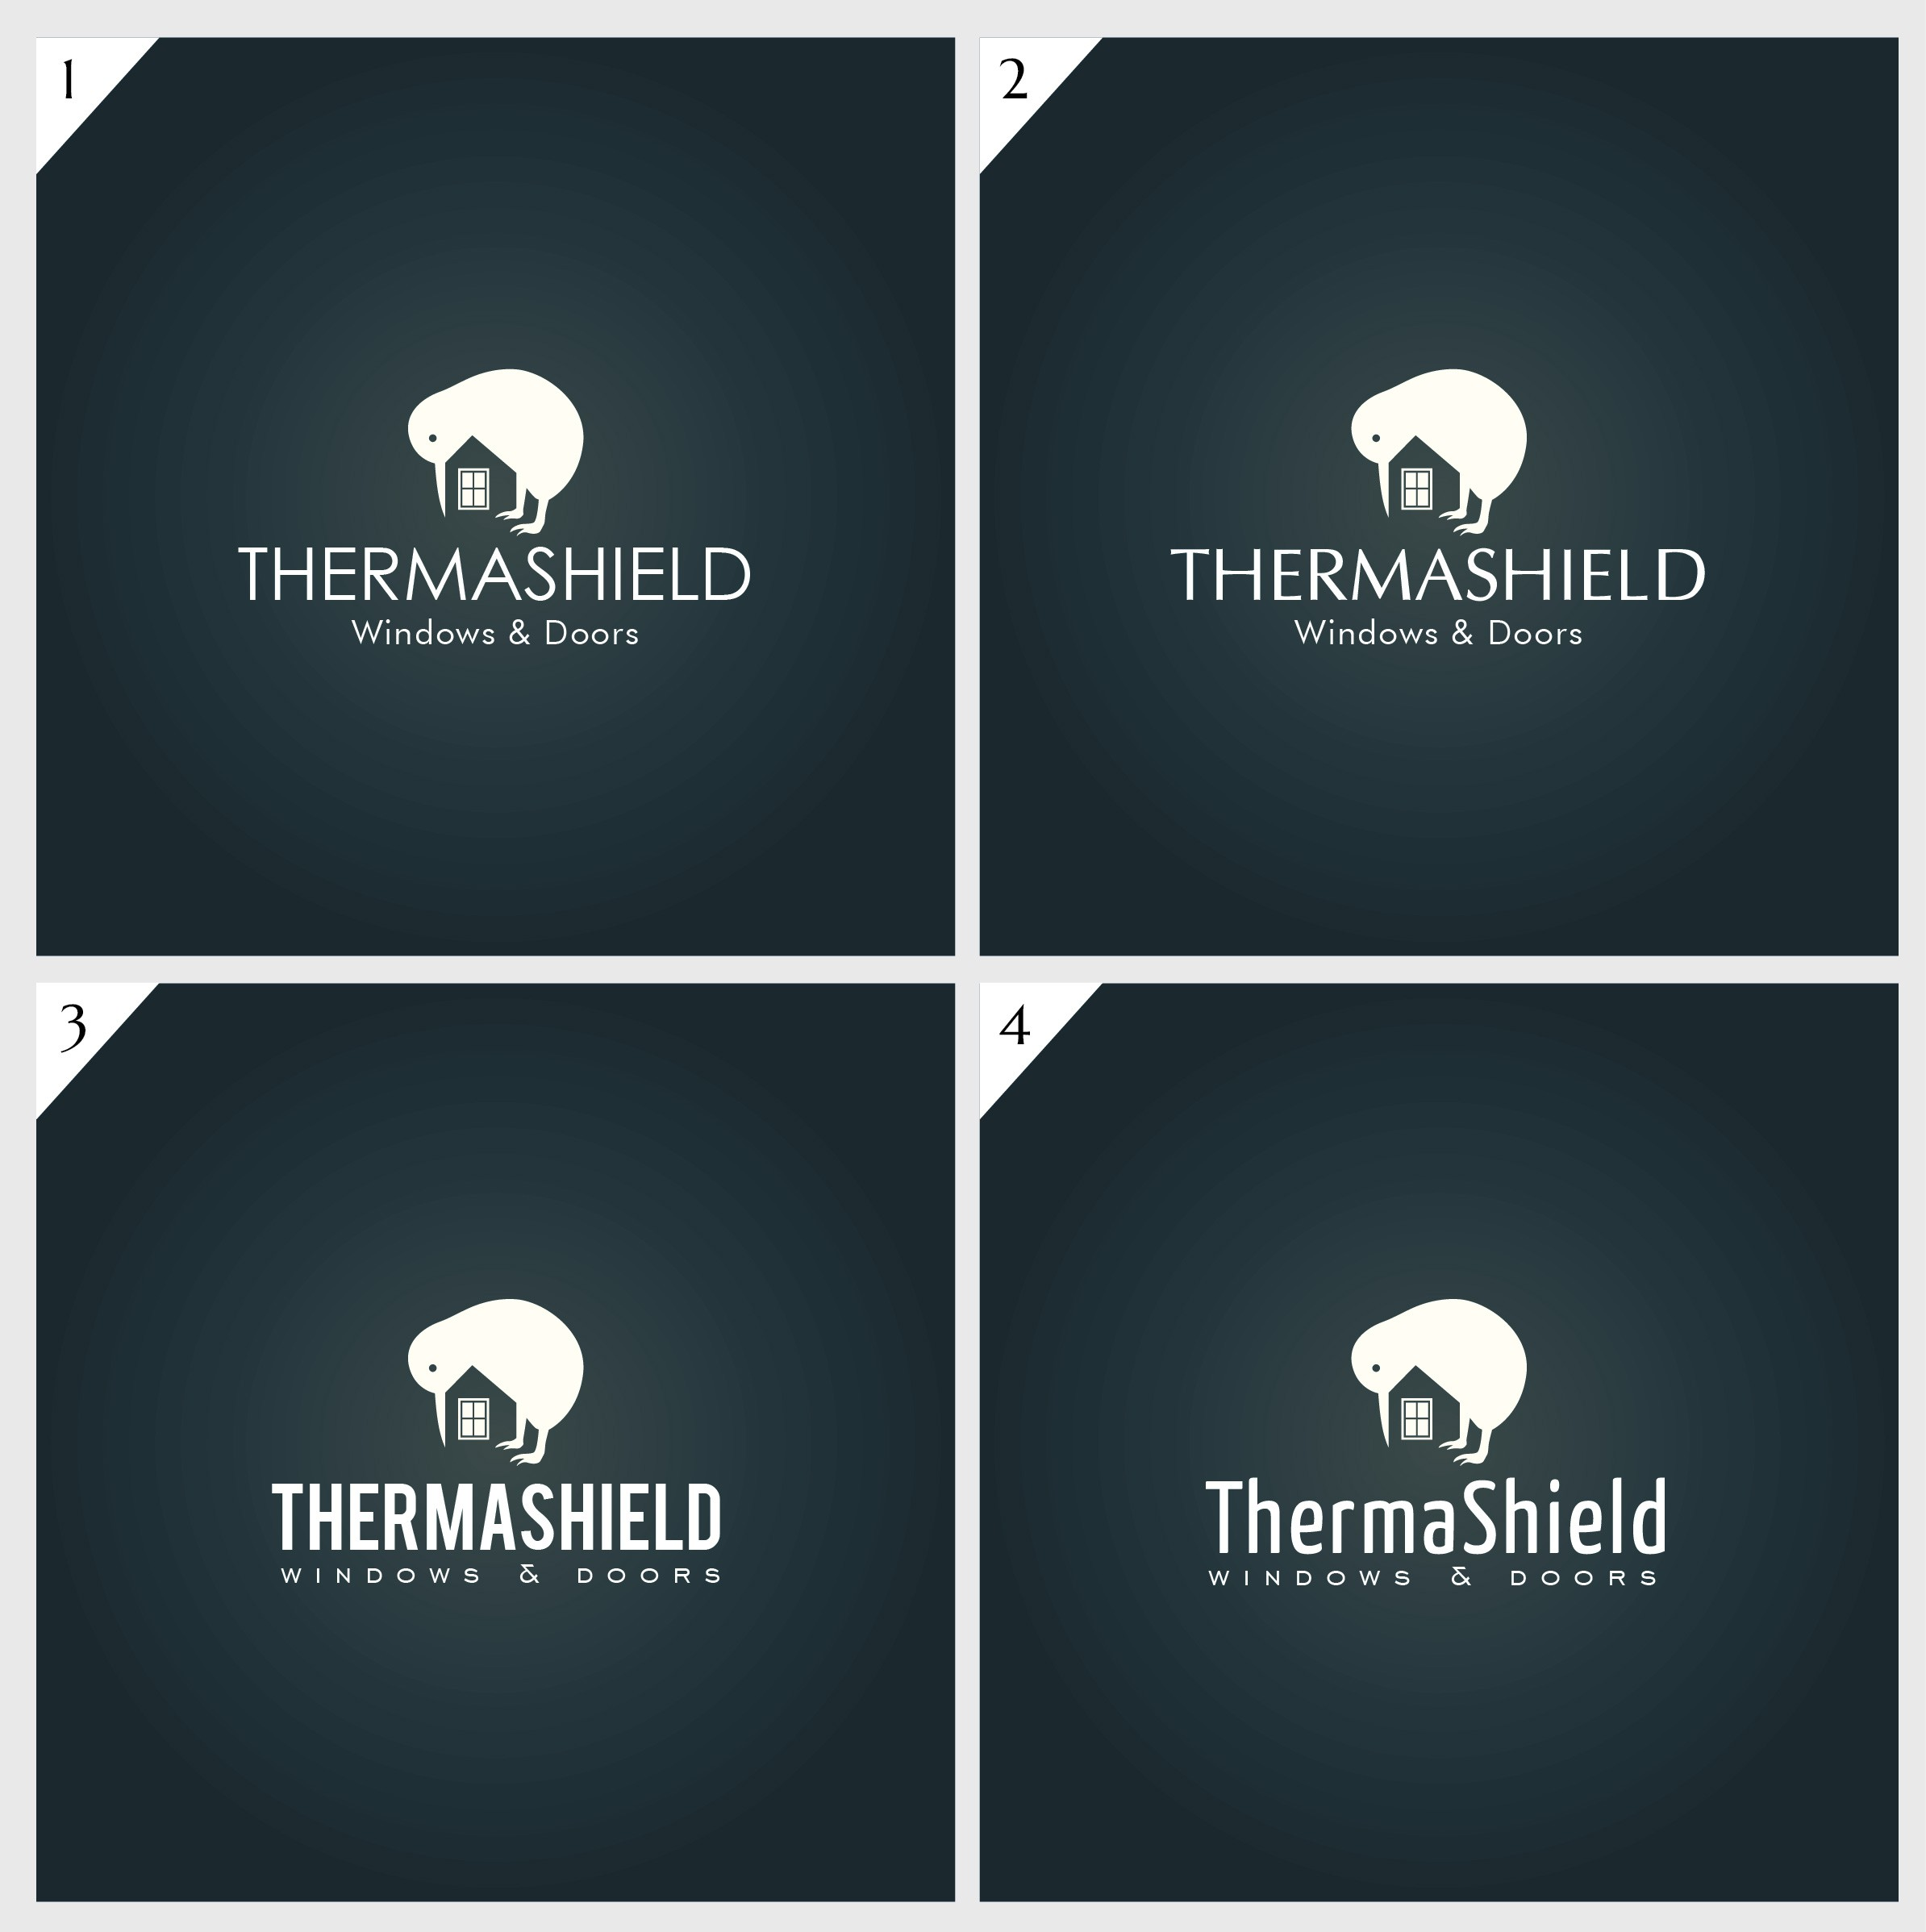 THERMASHIELD needs a powerful logo to get remembered!!!